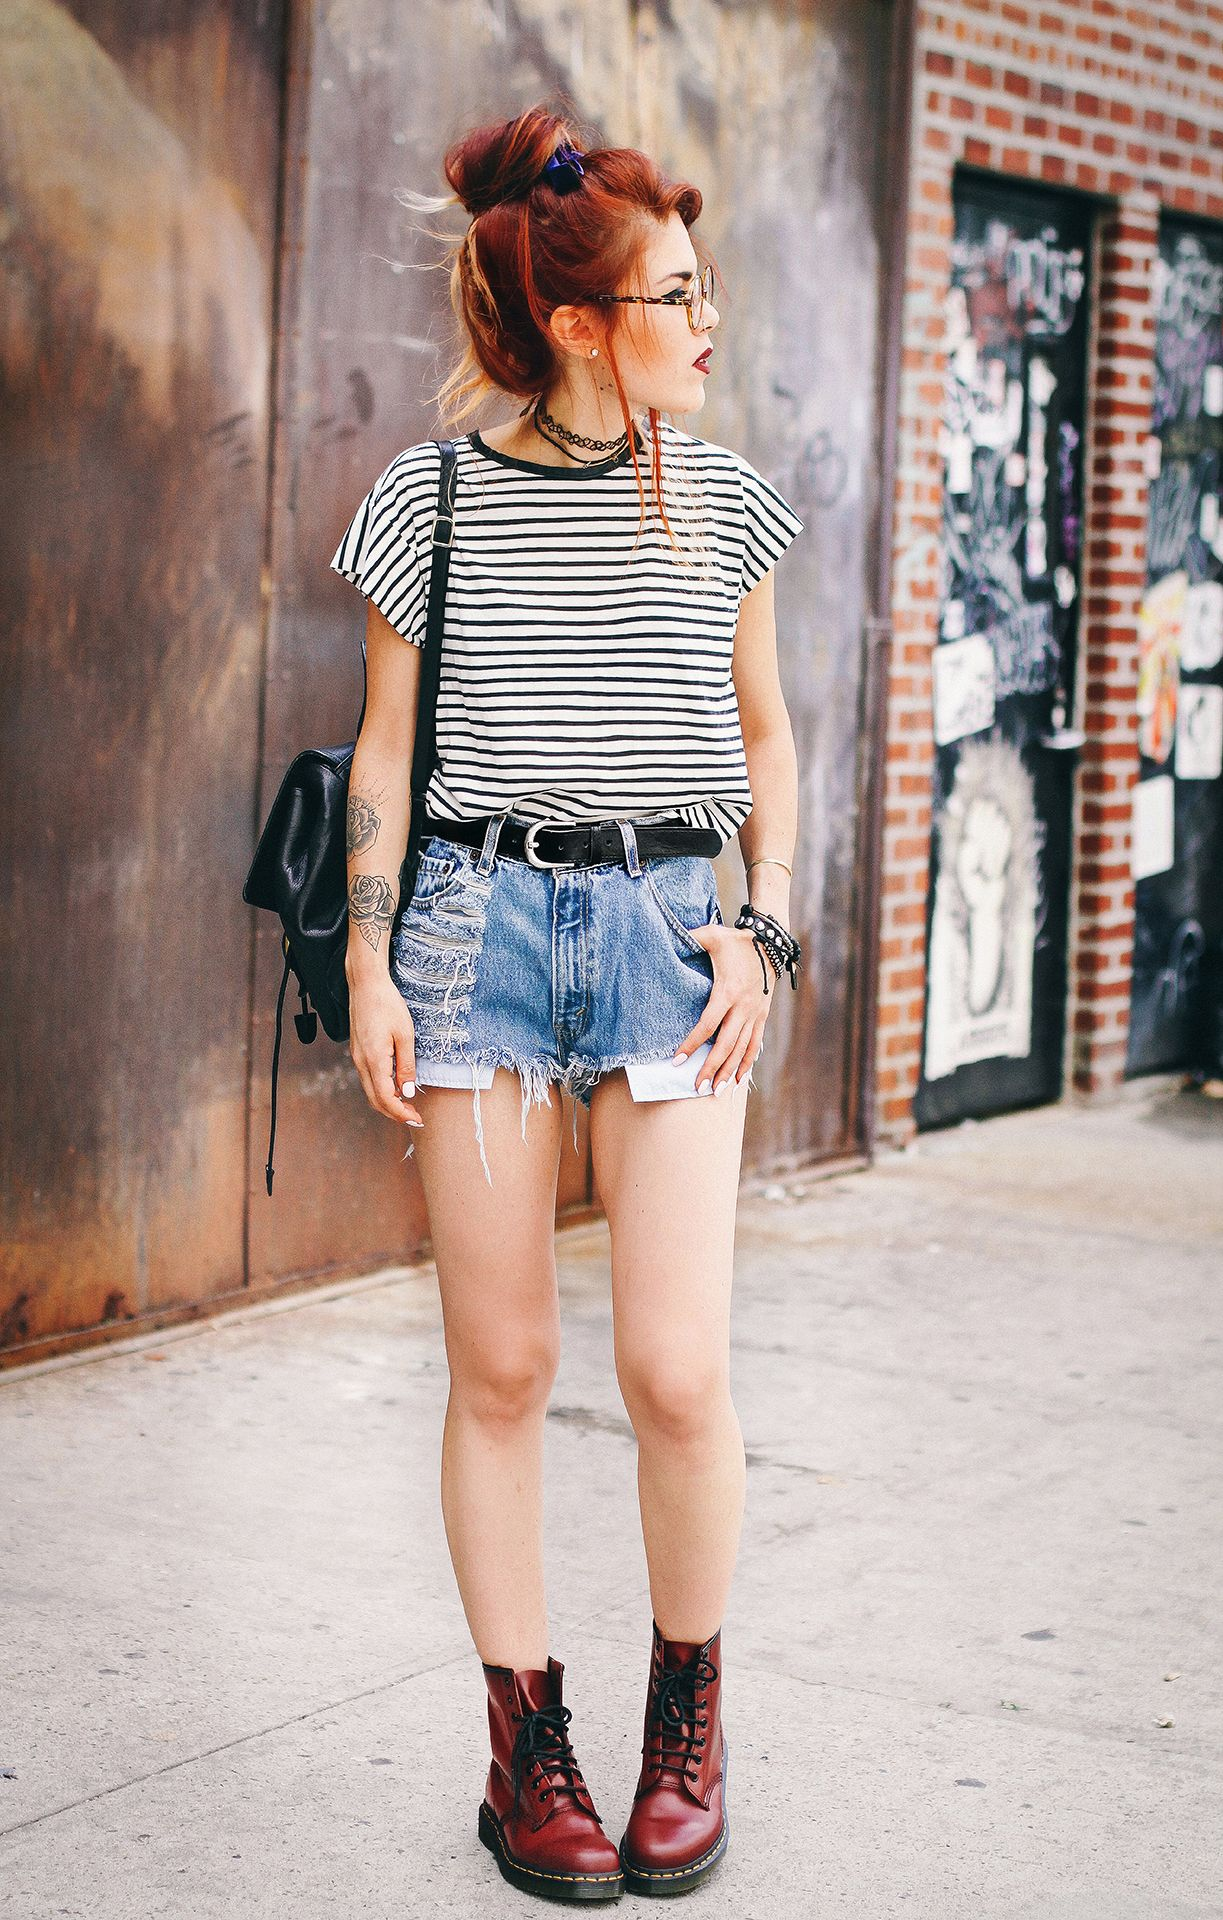 Find More at => http://feedproxy.google.com/~r/amazingoutfits/~3/Uss0oRXbe-E/AmazingOutfits.page